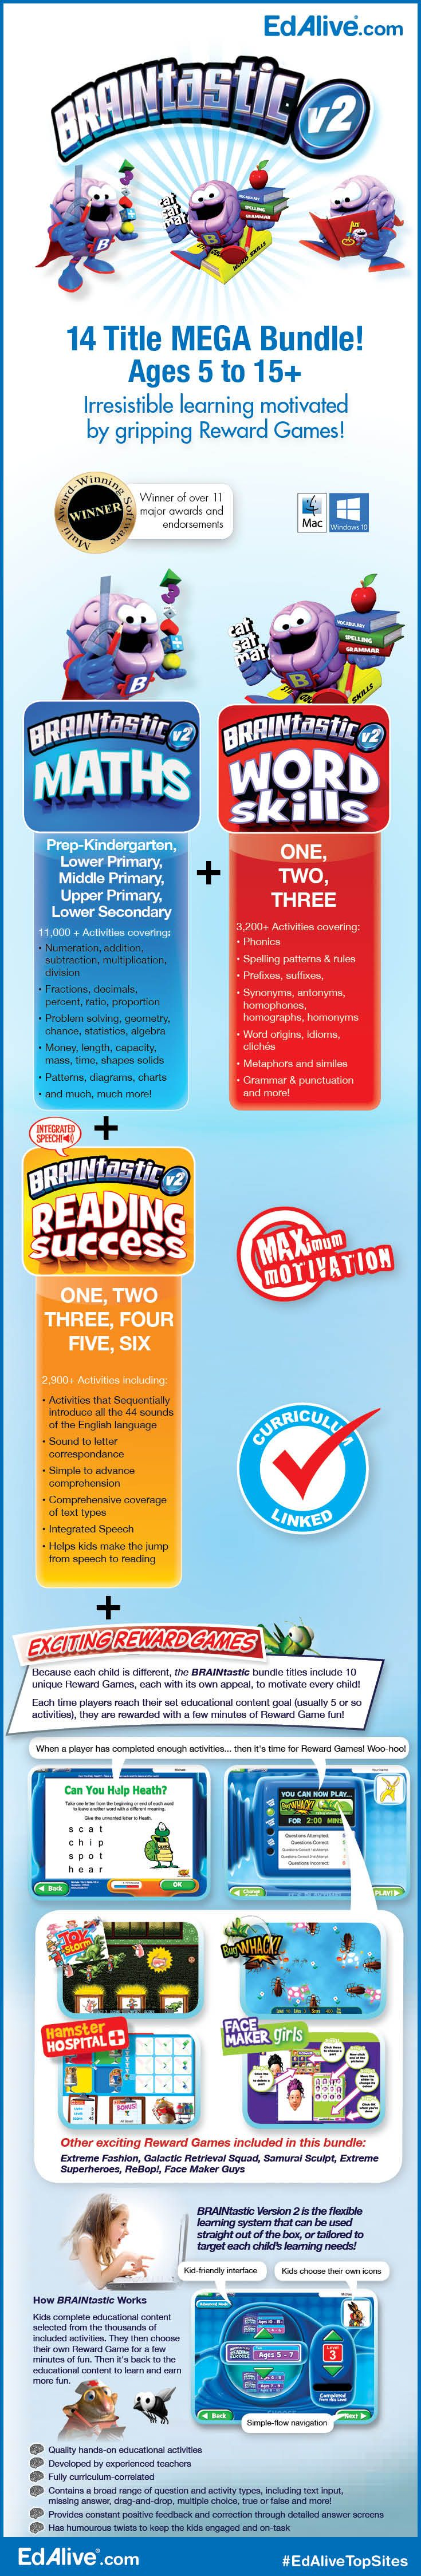 Irresistible learning motivated by gripping Reward Games!  Includes over 17,000 carefully sequenced learning activities from BRAINtastic Maths, BRAINtastic Word Skills and BRAINtastic Reading Success! You can customise the Work/Play ratio to maximise your child's learning. #Mathematics #Reading #WordSkills #EdAliveTopSites